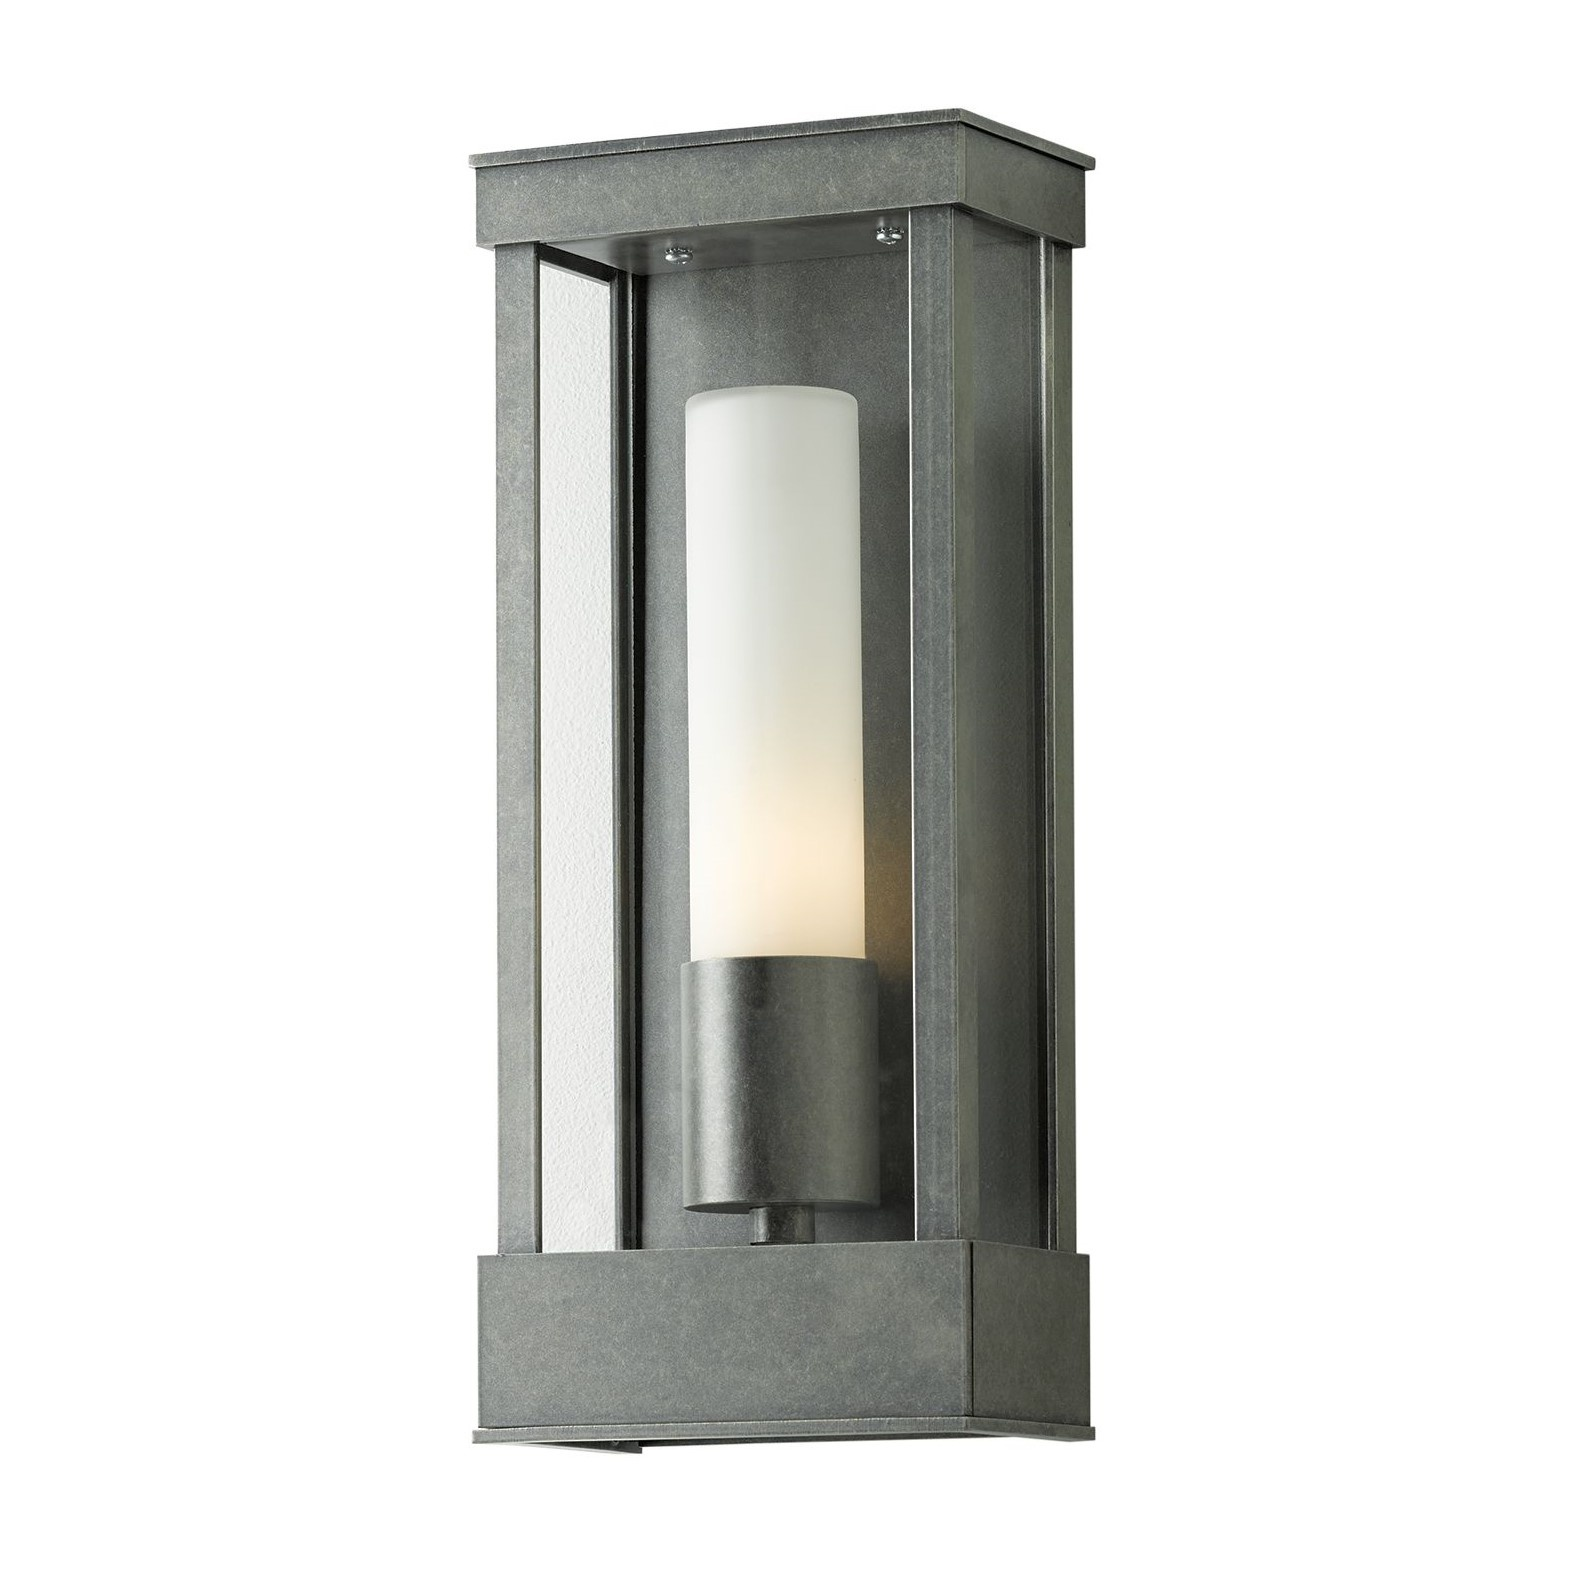 Hubbardton Forge 304320 Portico Outdoor Sconce in Coastal Burnished Steel